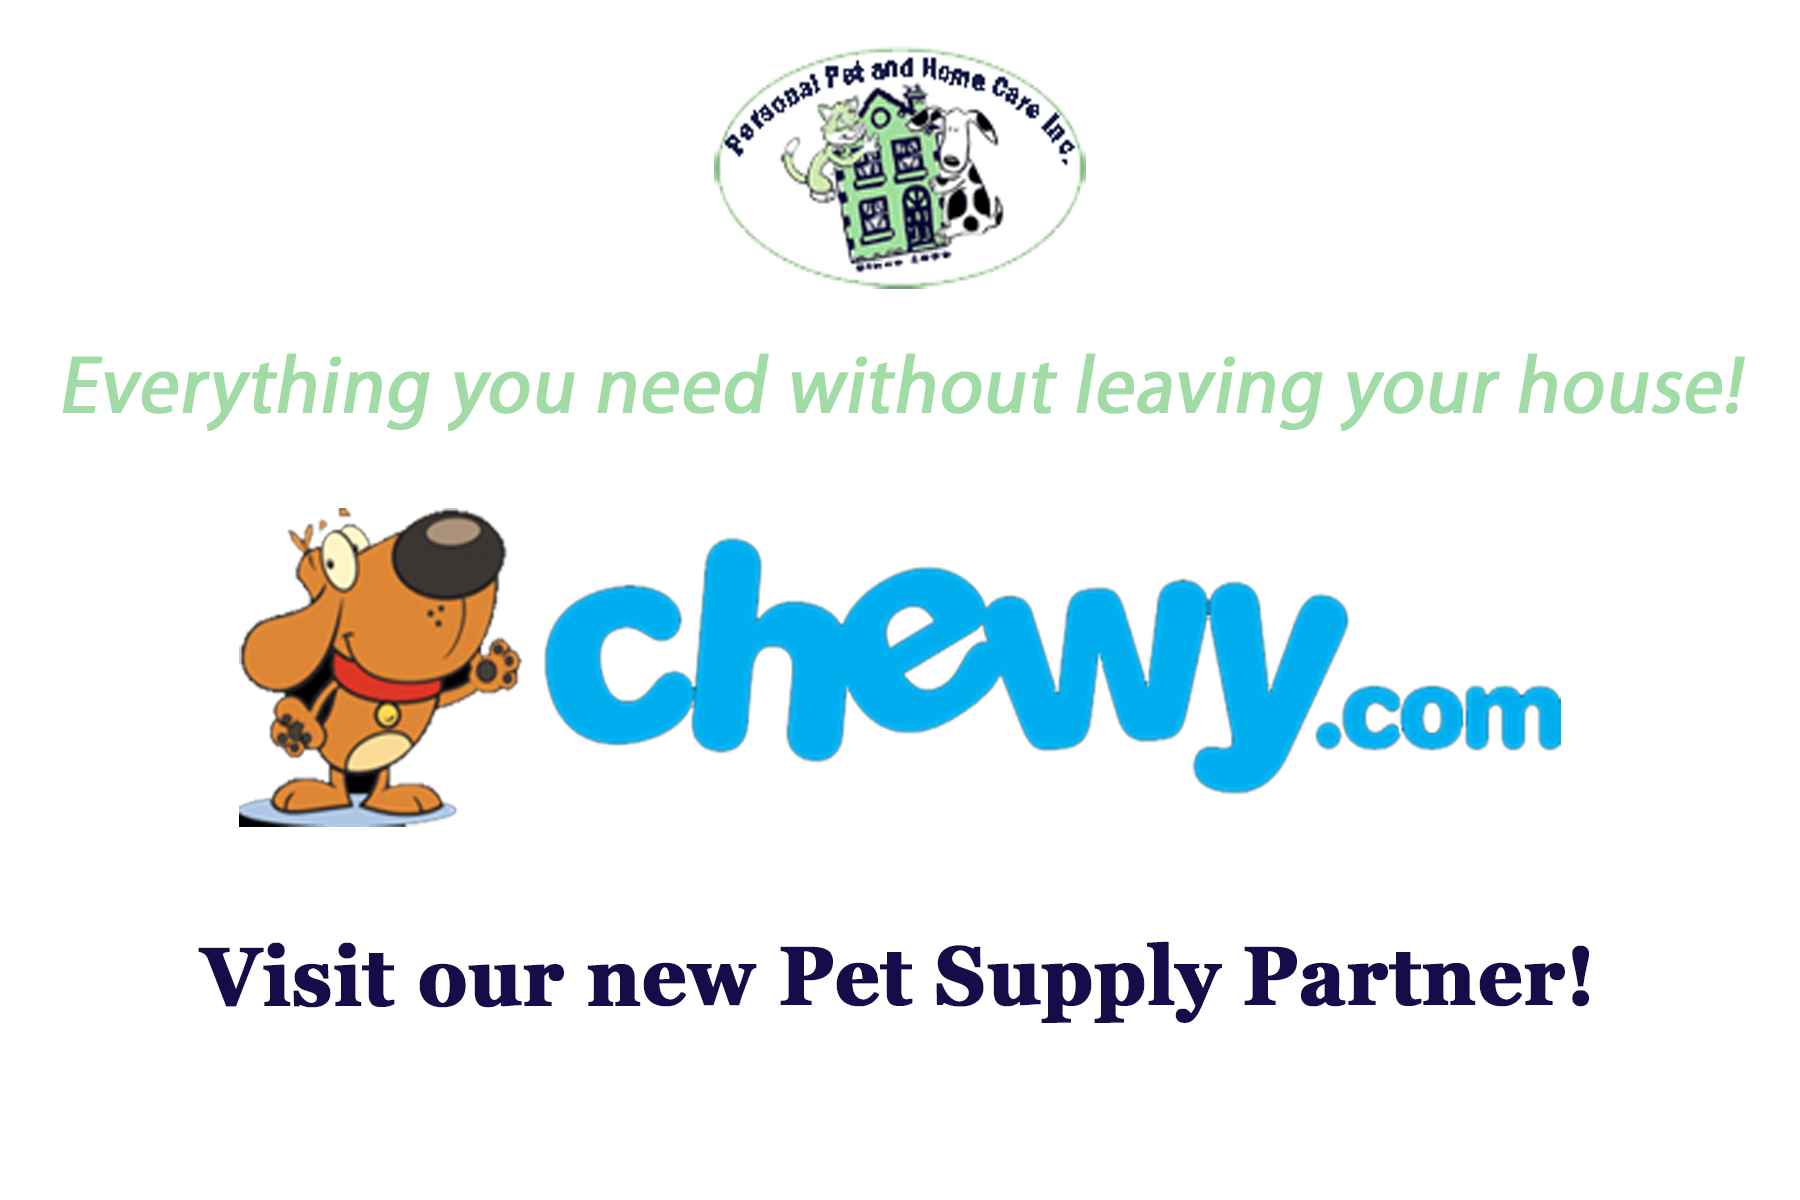 Chewy.com for Pet Supplies